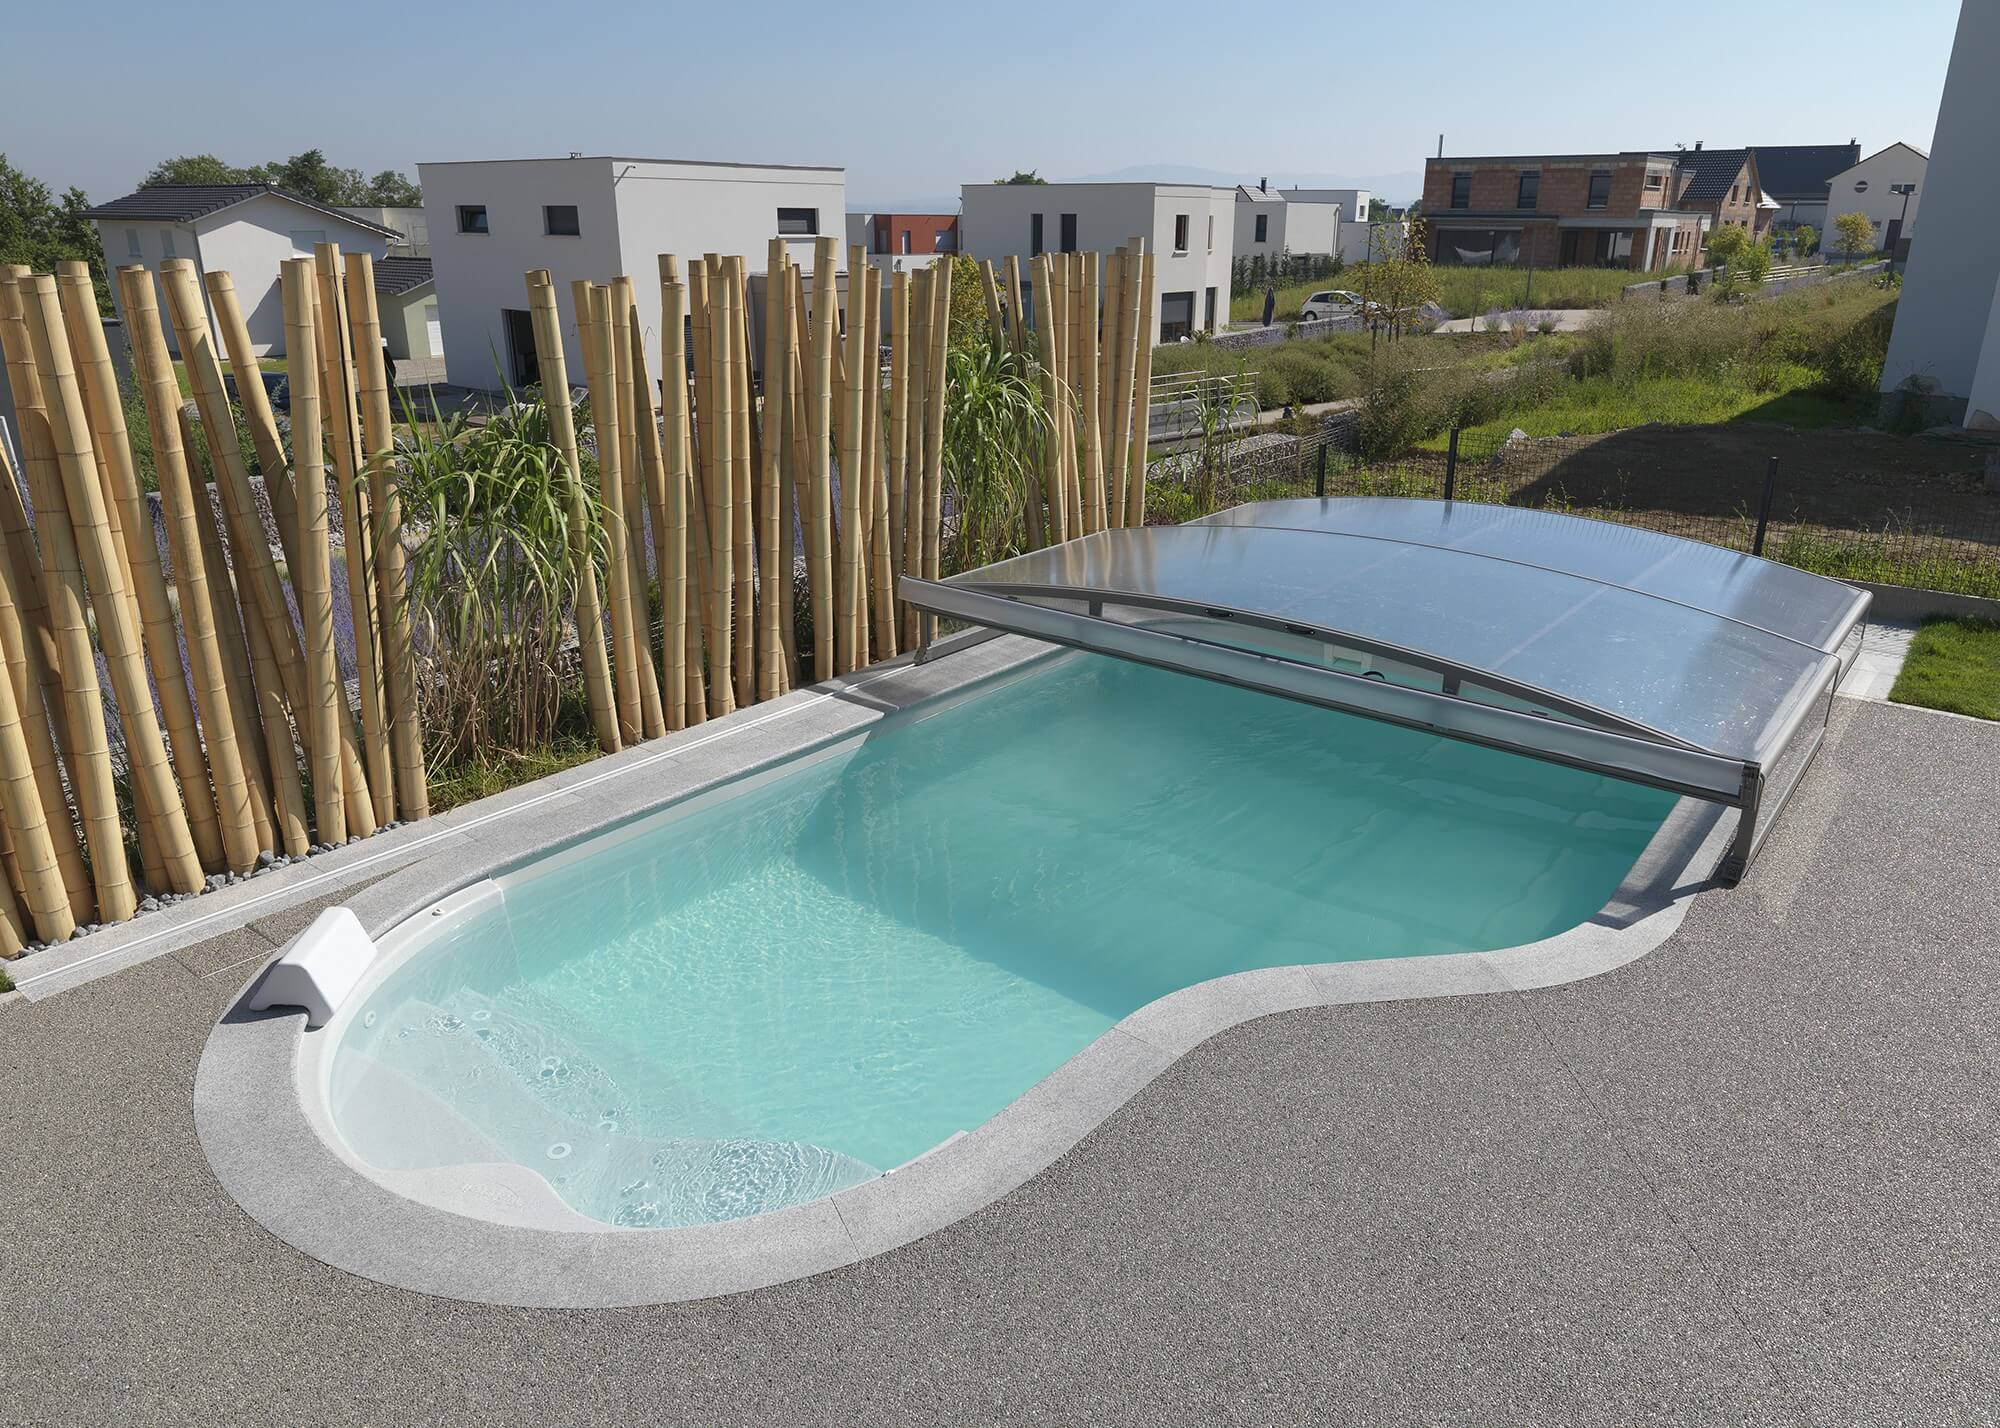 Abri t lescopique bas pour piscine piscines waterair for Abri piscine waterair